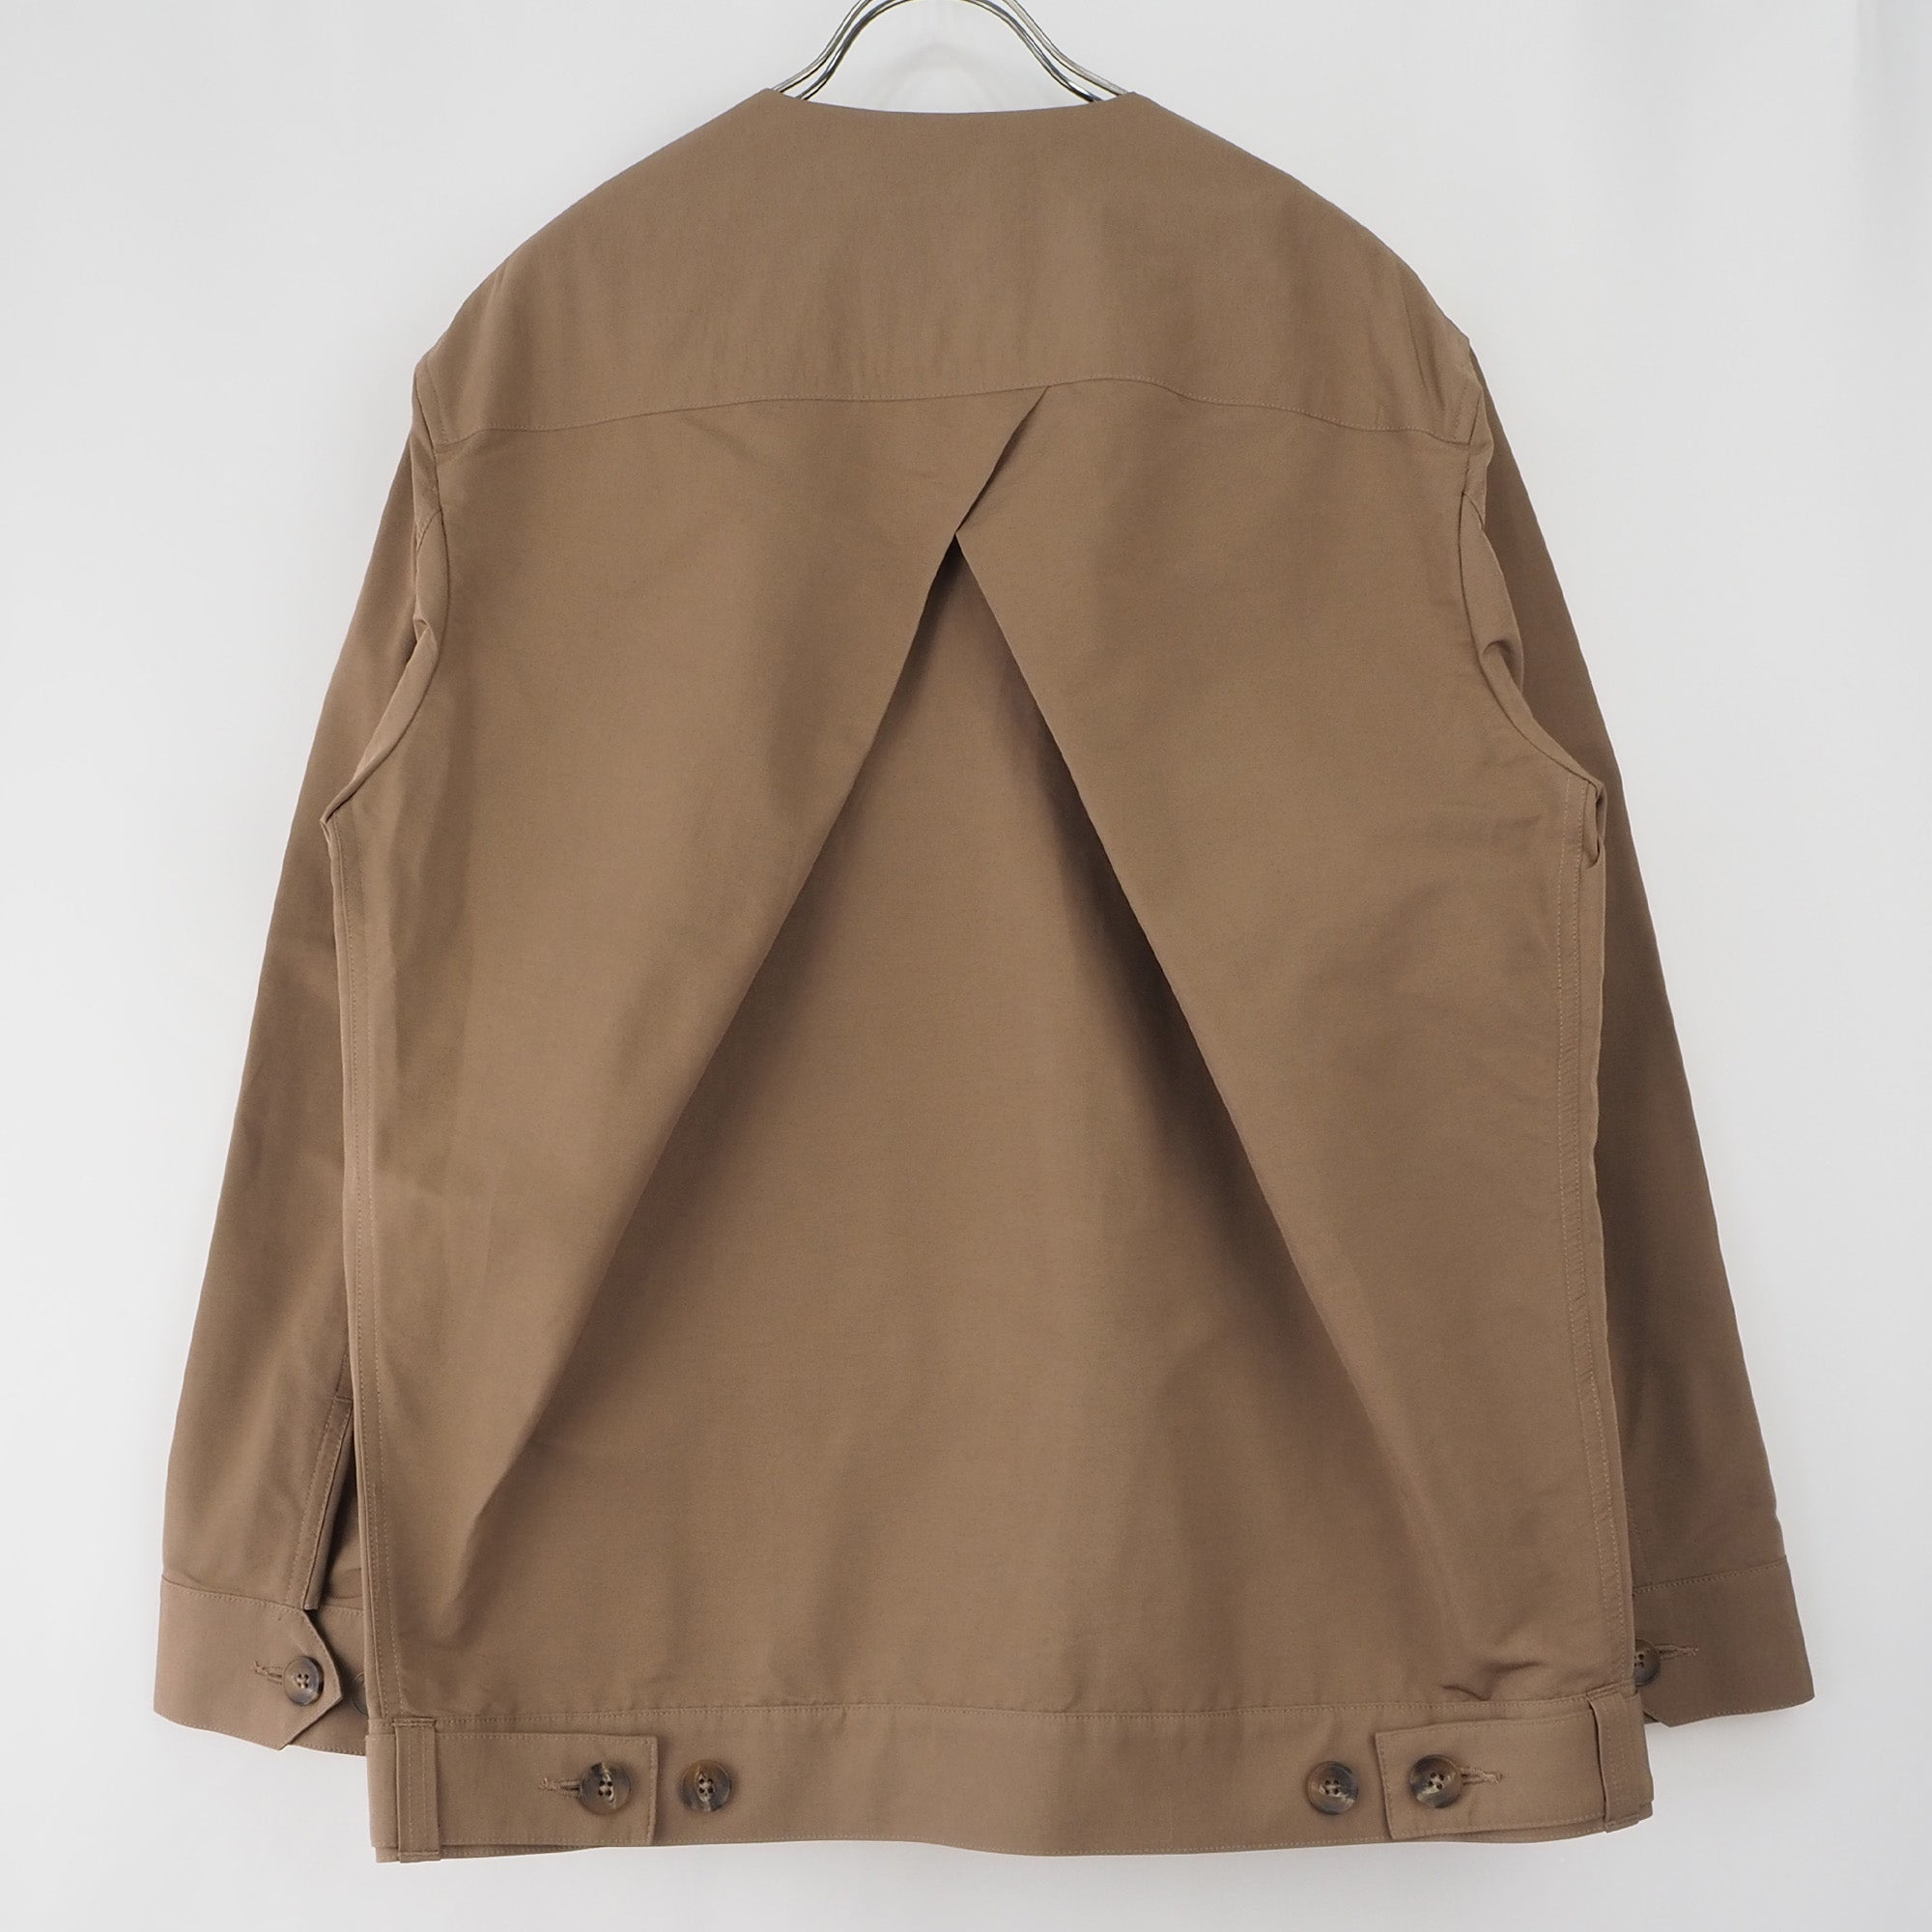 NO COLLAR JKT | JIVELTA 2020 SS